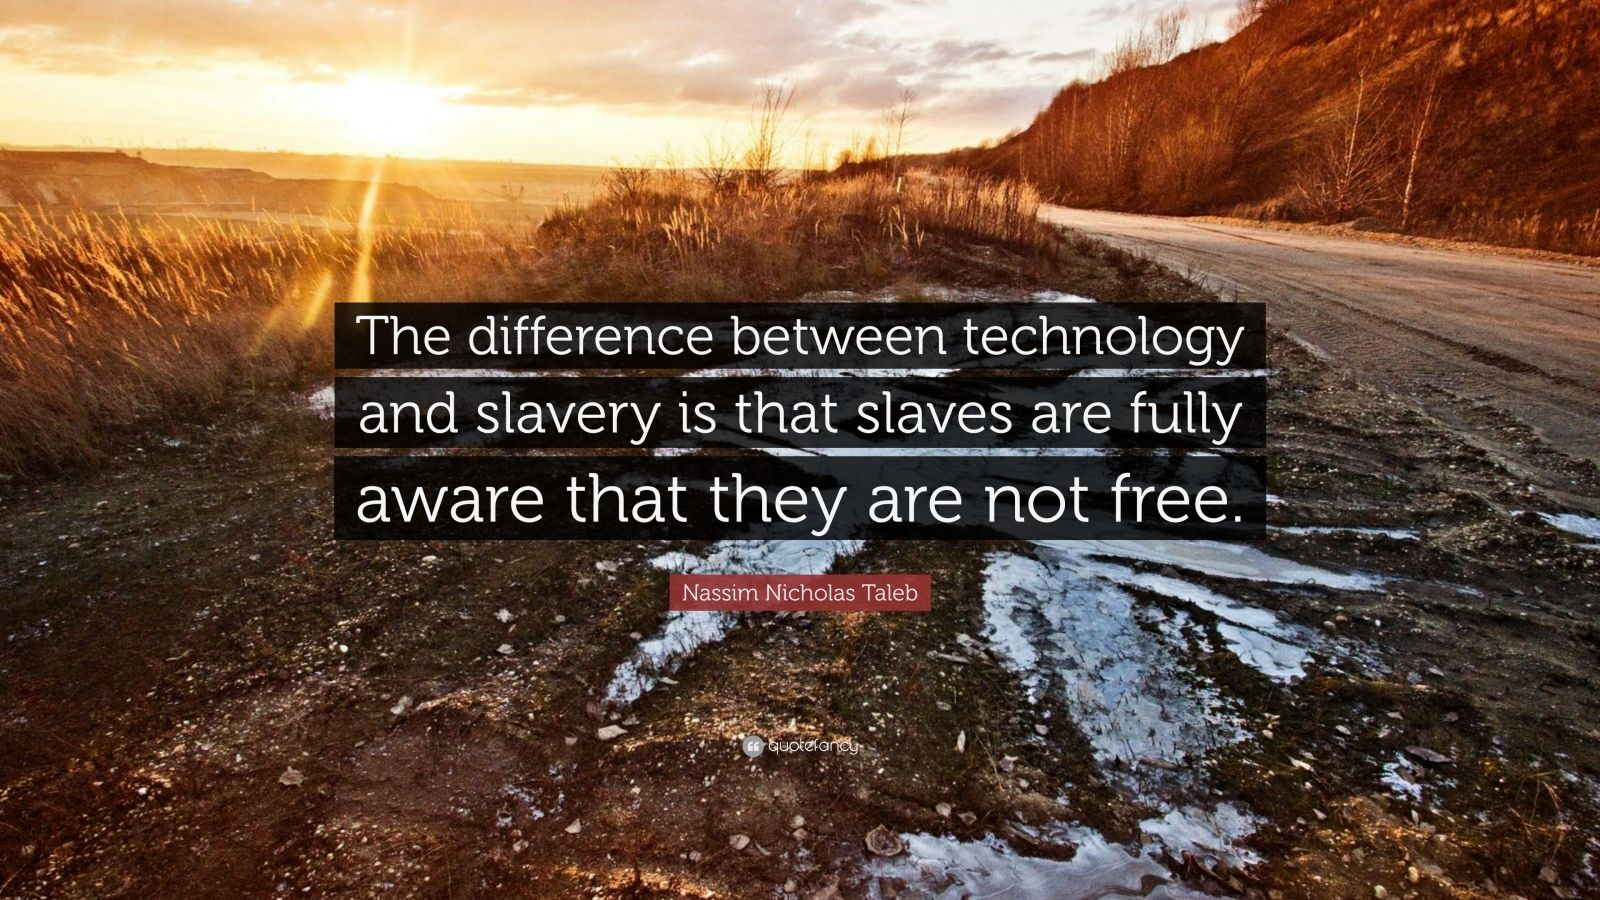 """Nassim Nicholas Taleb Quote: """"The difference between technology and slavery is that slaves are fully aware that they are not free."""""""